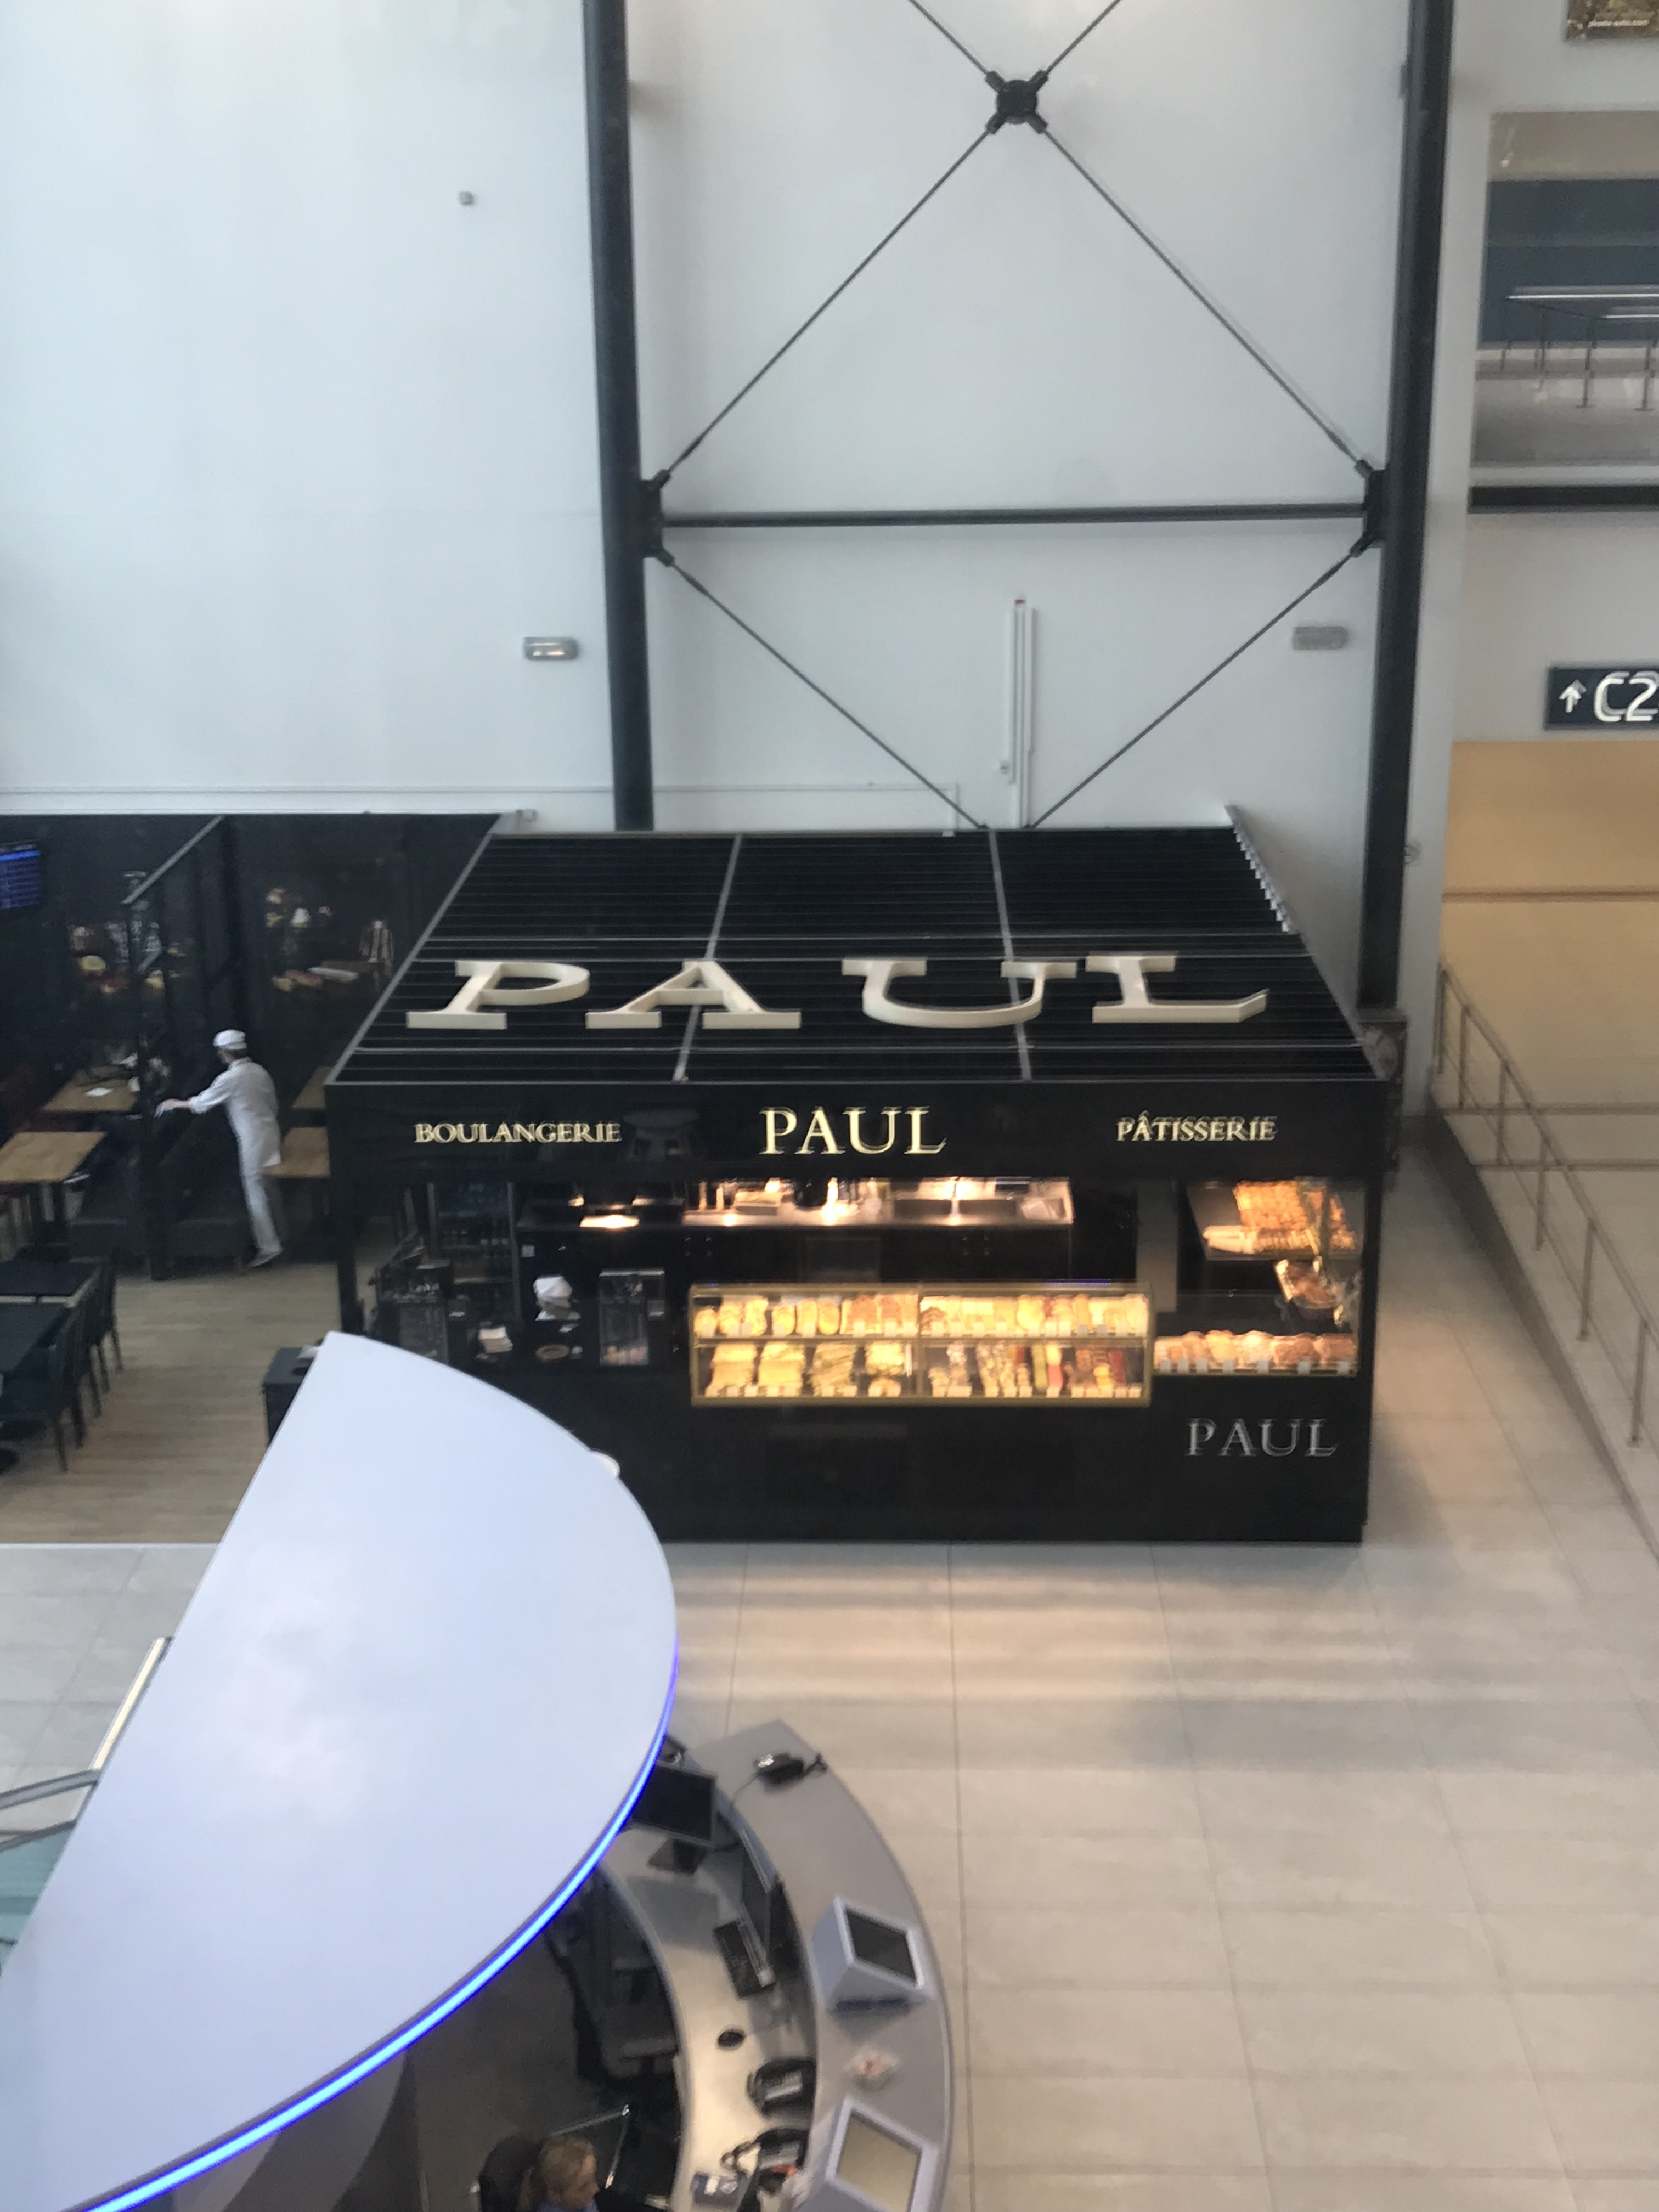 Prague Tips - Paul is your best bet in getting something quick to eat before your flight